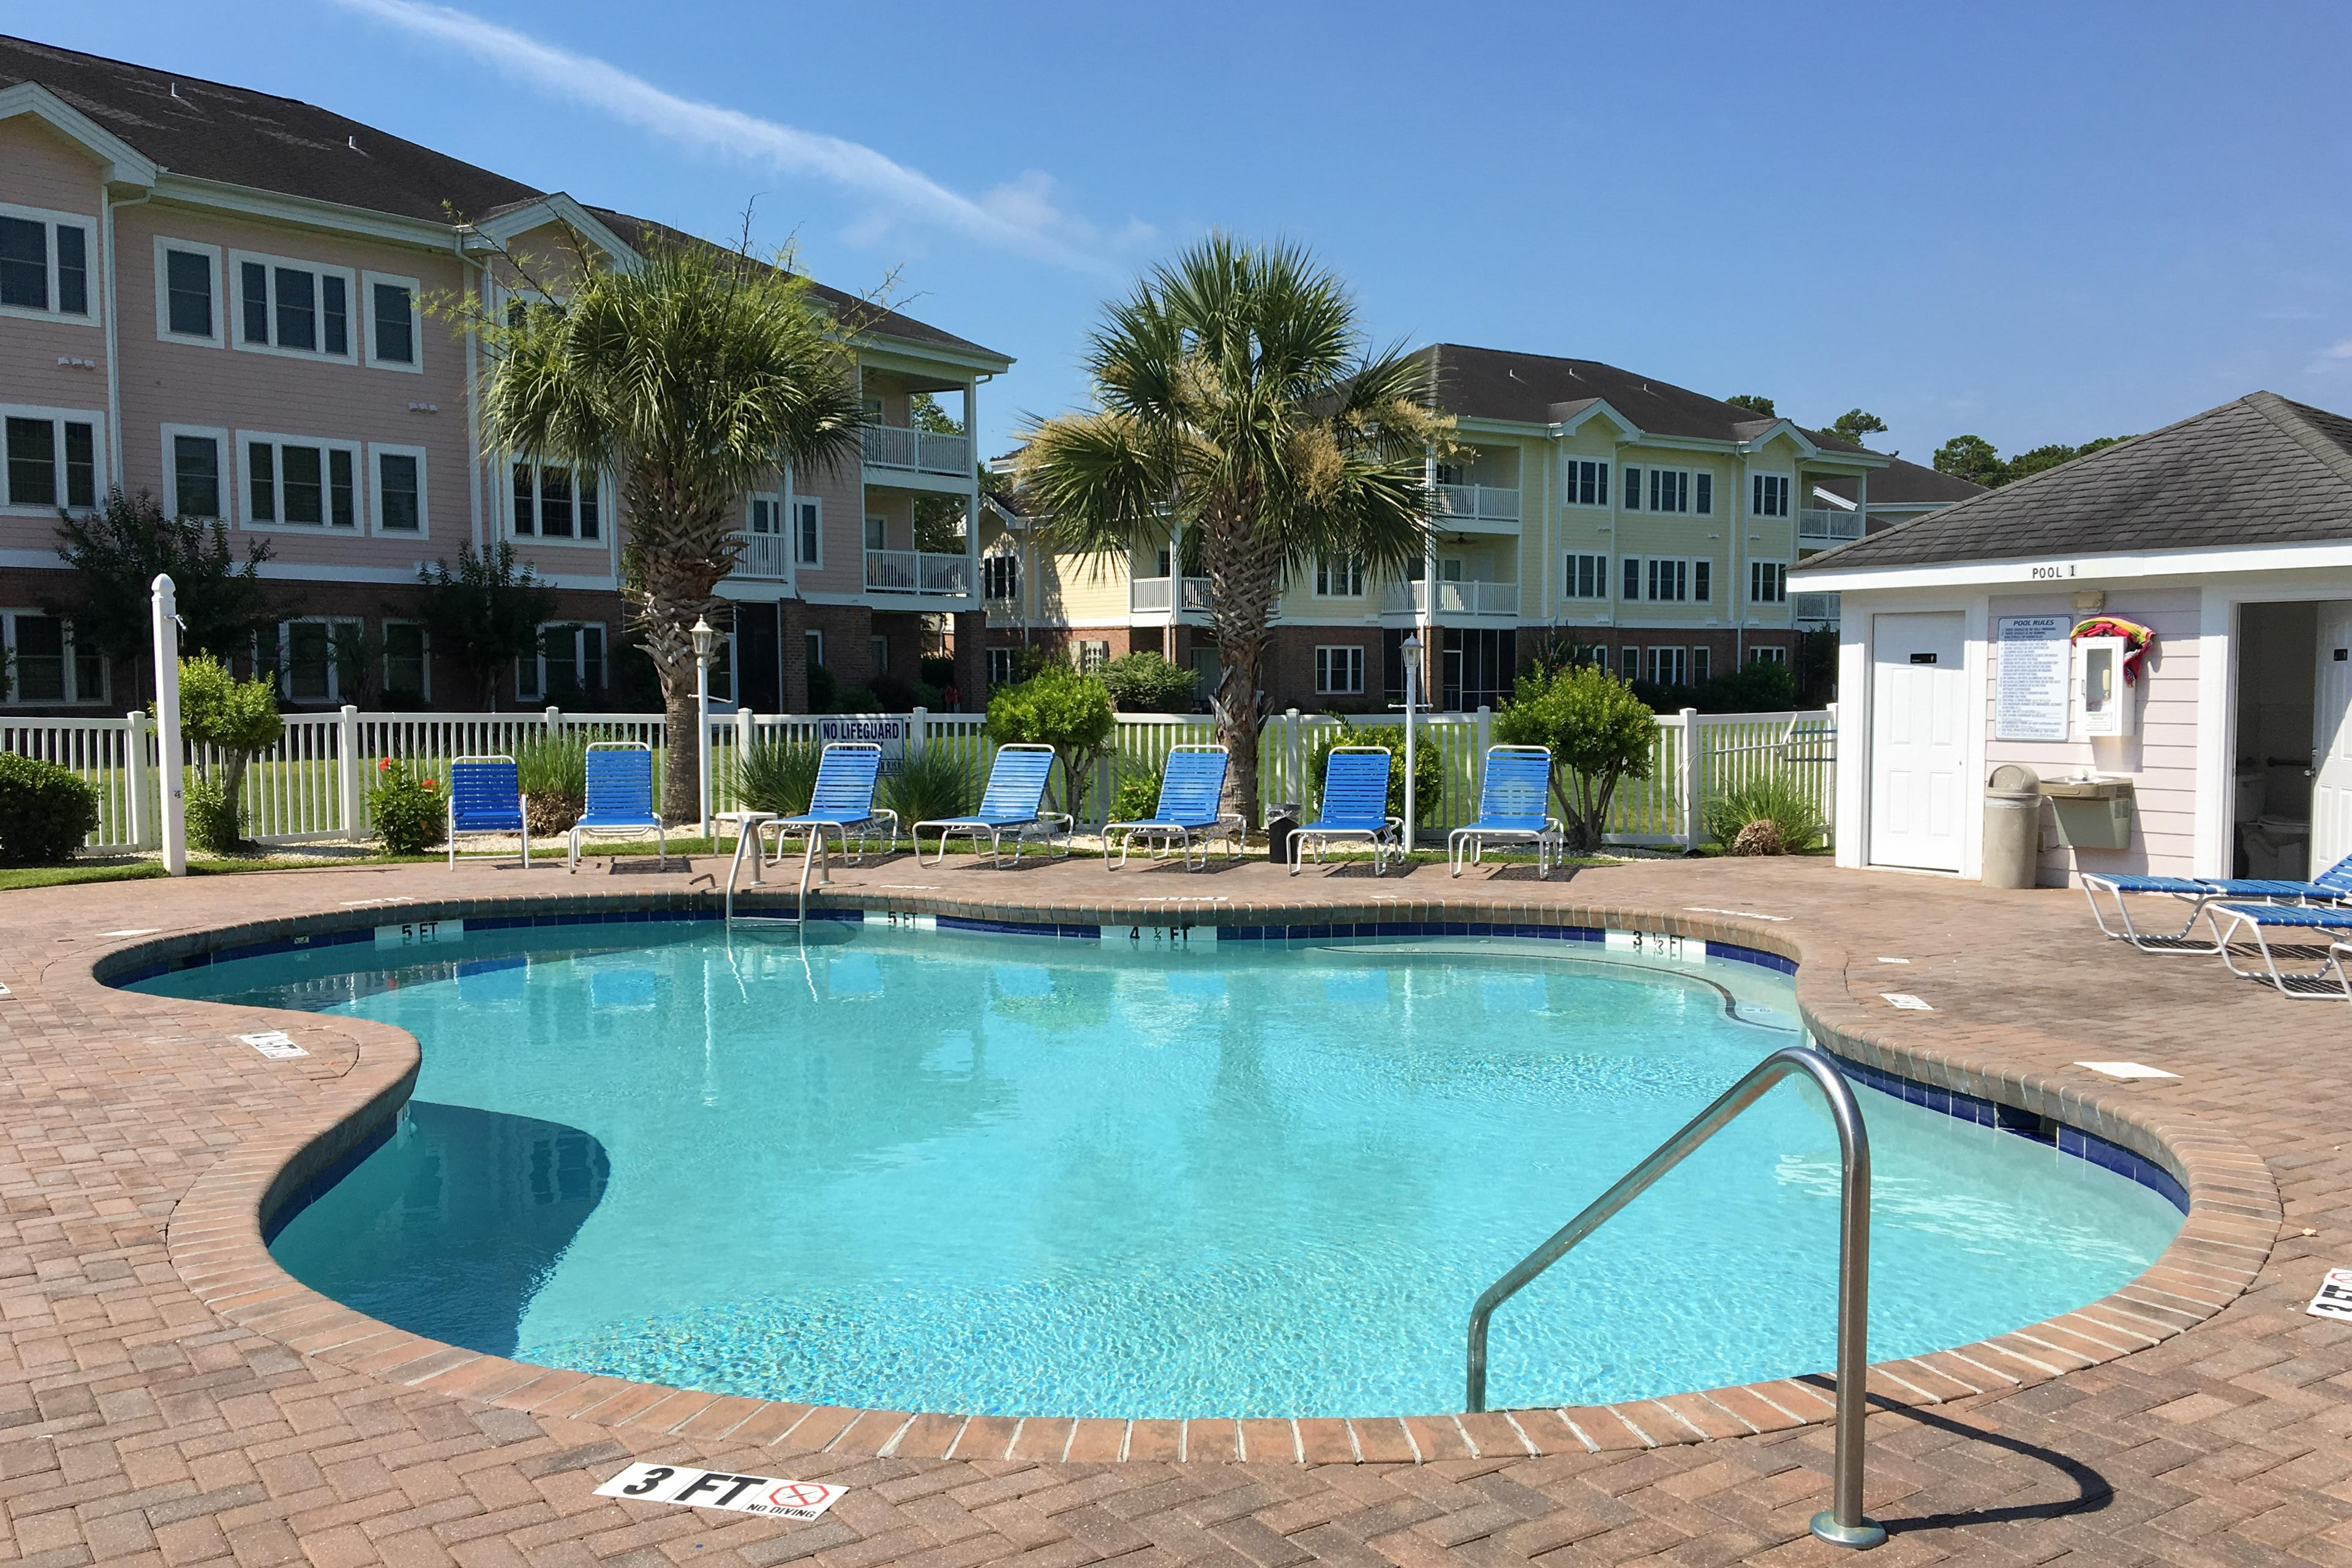 Property Image 2 - Pristine Condo with Golf View Sunroom & Pool at Magnolia North